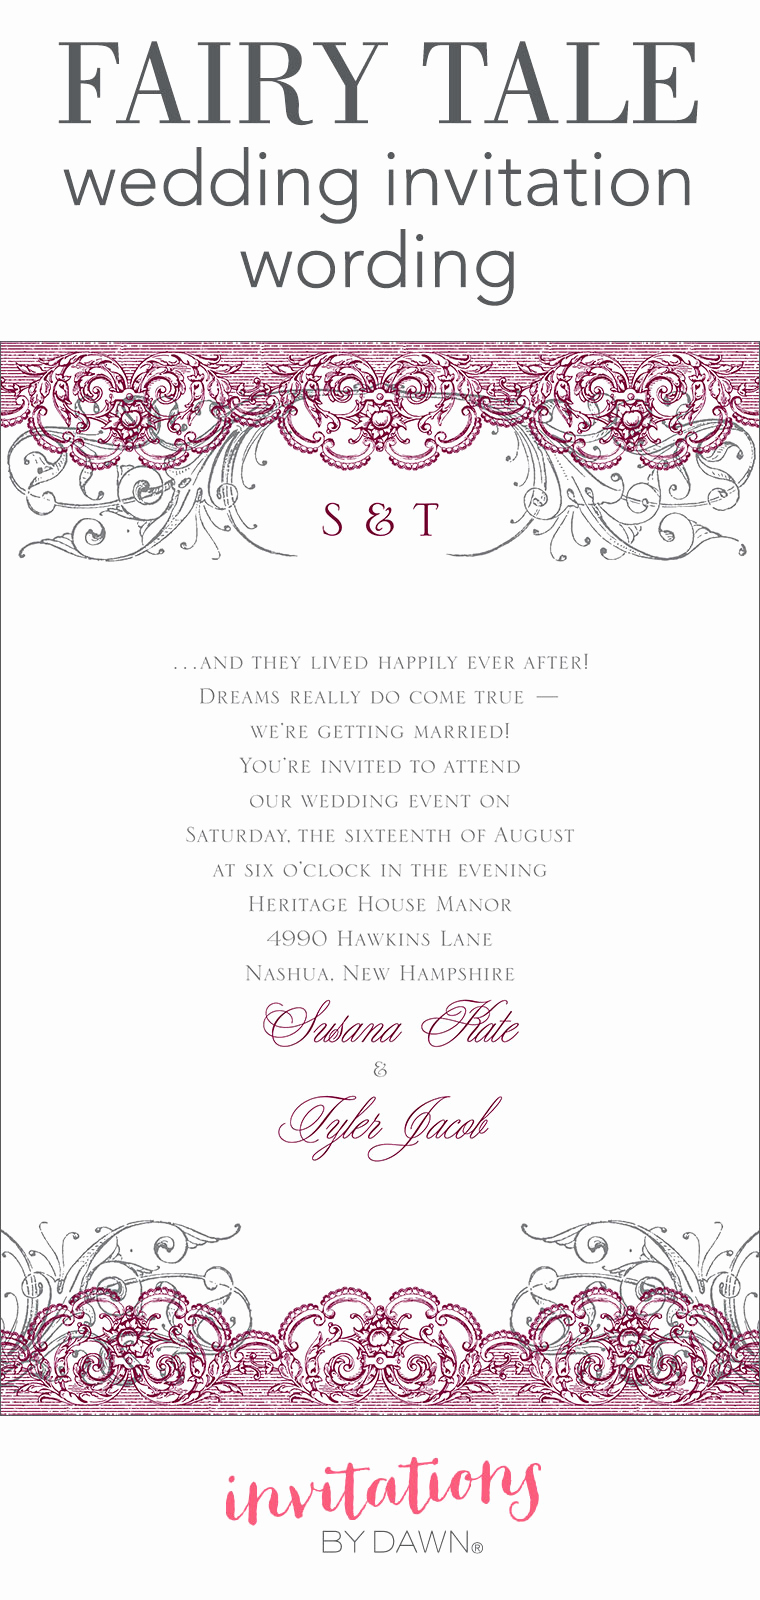 Wedding after Party Invitation Wording Awesome Fairy Tale Wedding Invitation Wording